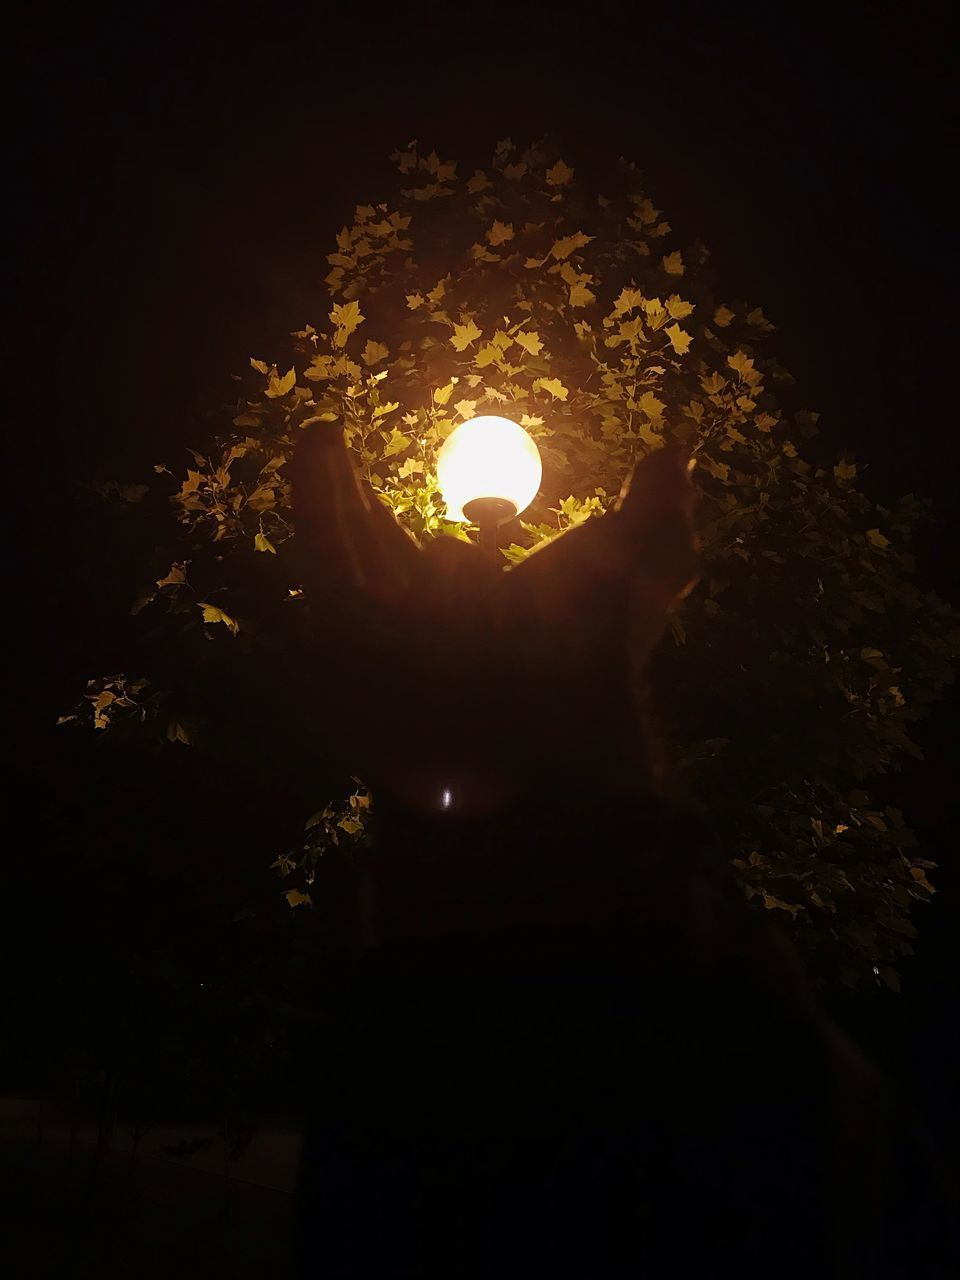 illuminated, night, lighting equipment, no people, nature, outdoors, low angle view, sky, tree, dark, glowing, orange color, flame, beauty in nature, technology, yellow, light - natural phenomenon, electricity, branch